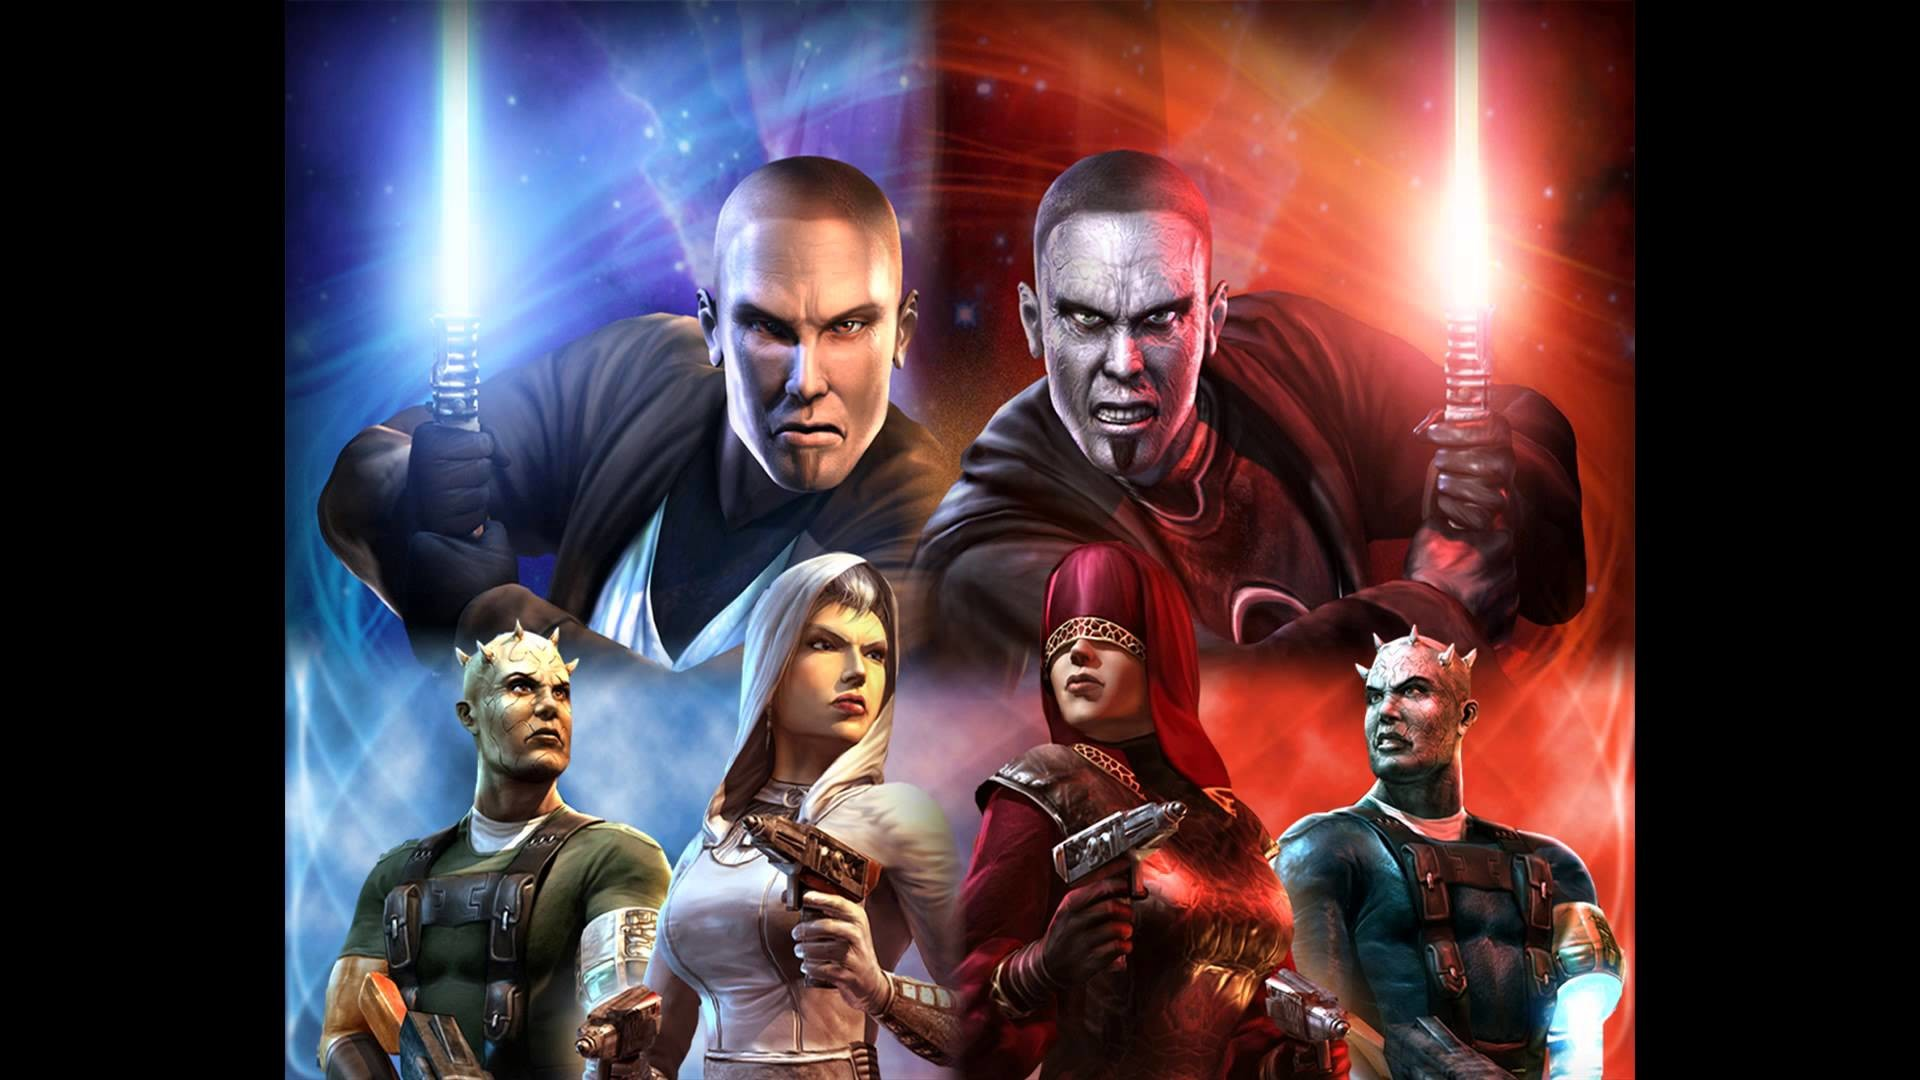 Src Kotor 2 Wallpaper Picture Data Id Star Wars Knights Of The Old Republic Deviantart 1920x1080 Download Hd Wallpaper Wallpapertip